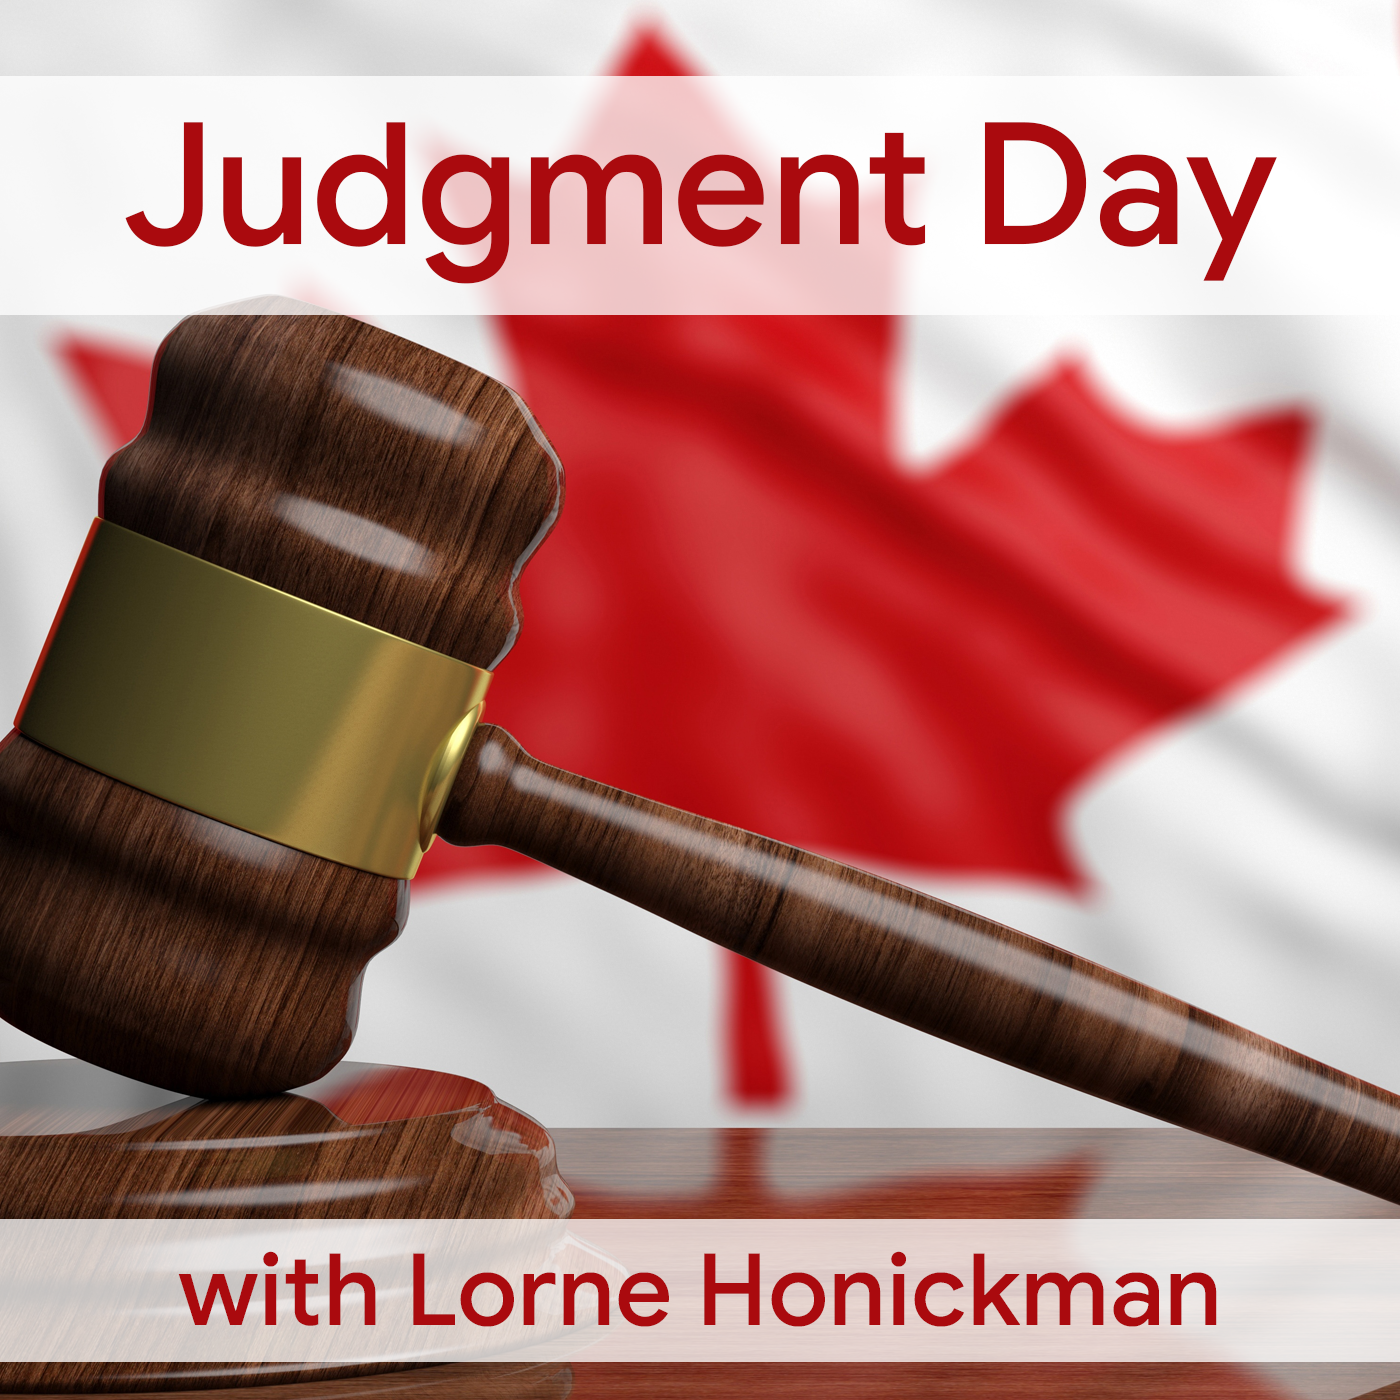 Judgment Day with Lorne Honickman